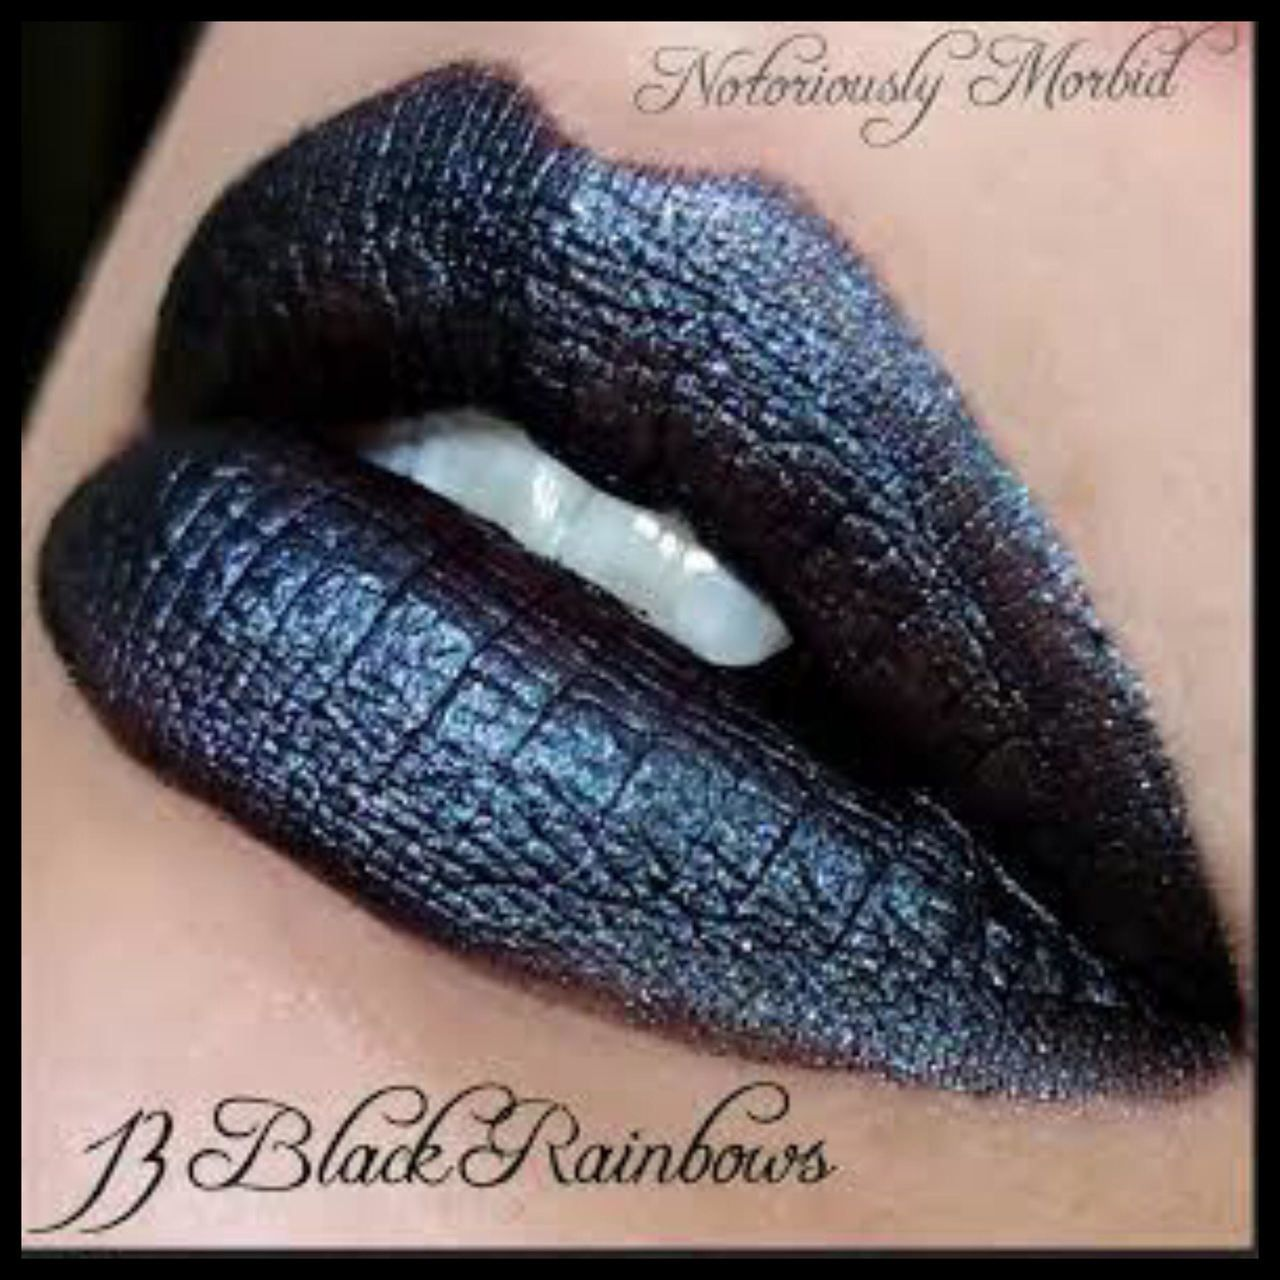 13 Black Rainbows Mystic Matte Face Gems Gloss Lipstick Glossy